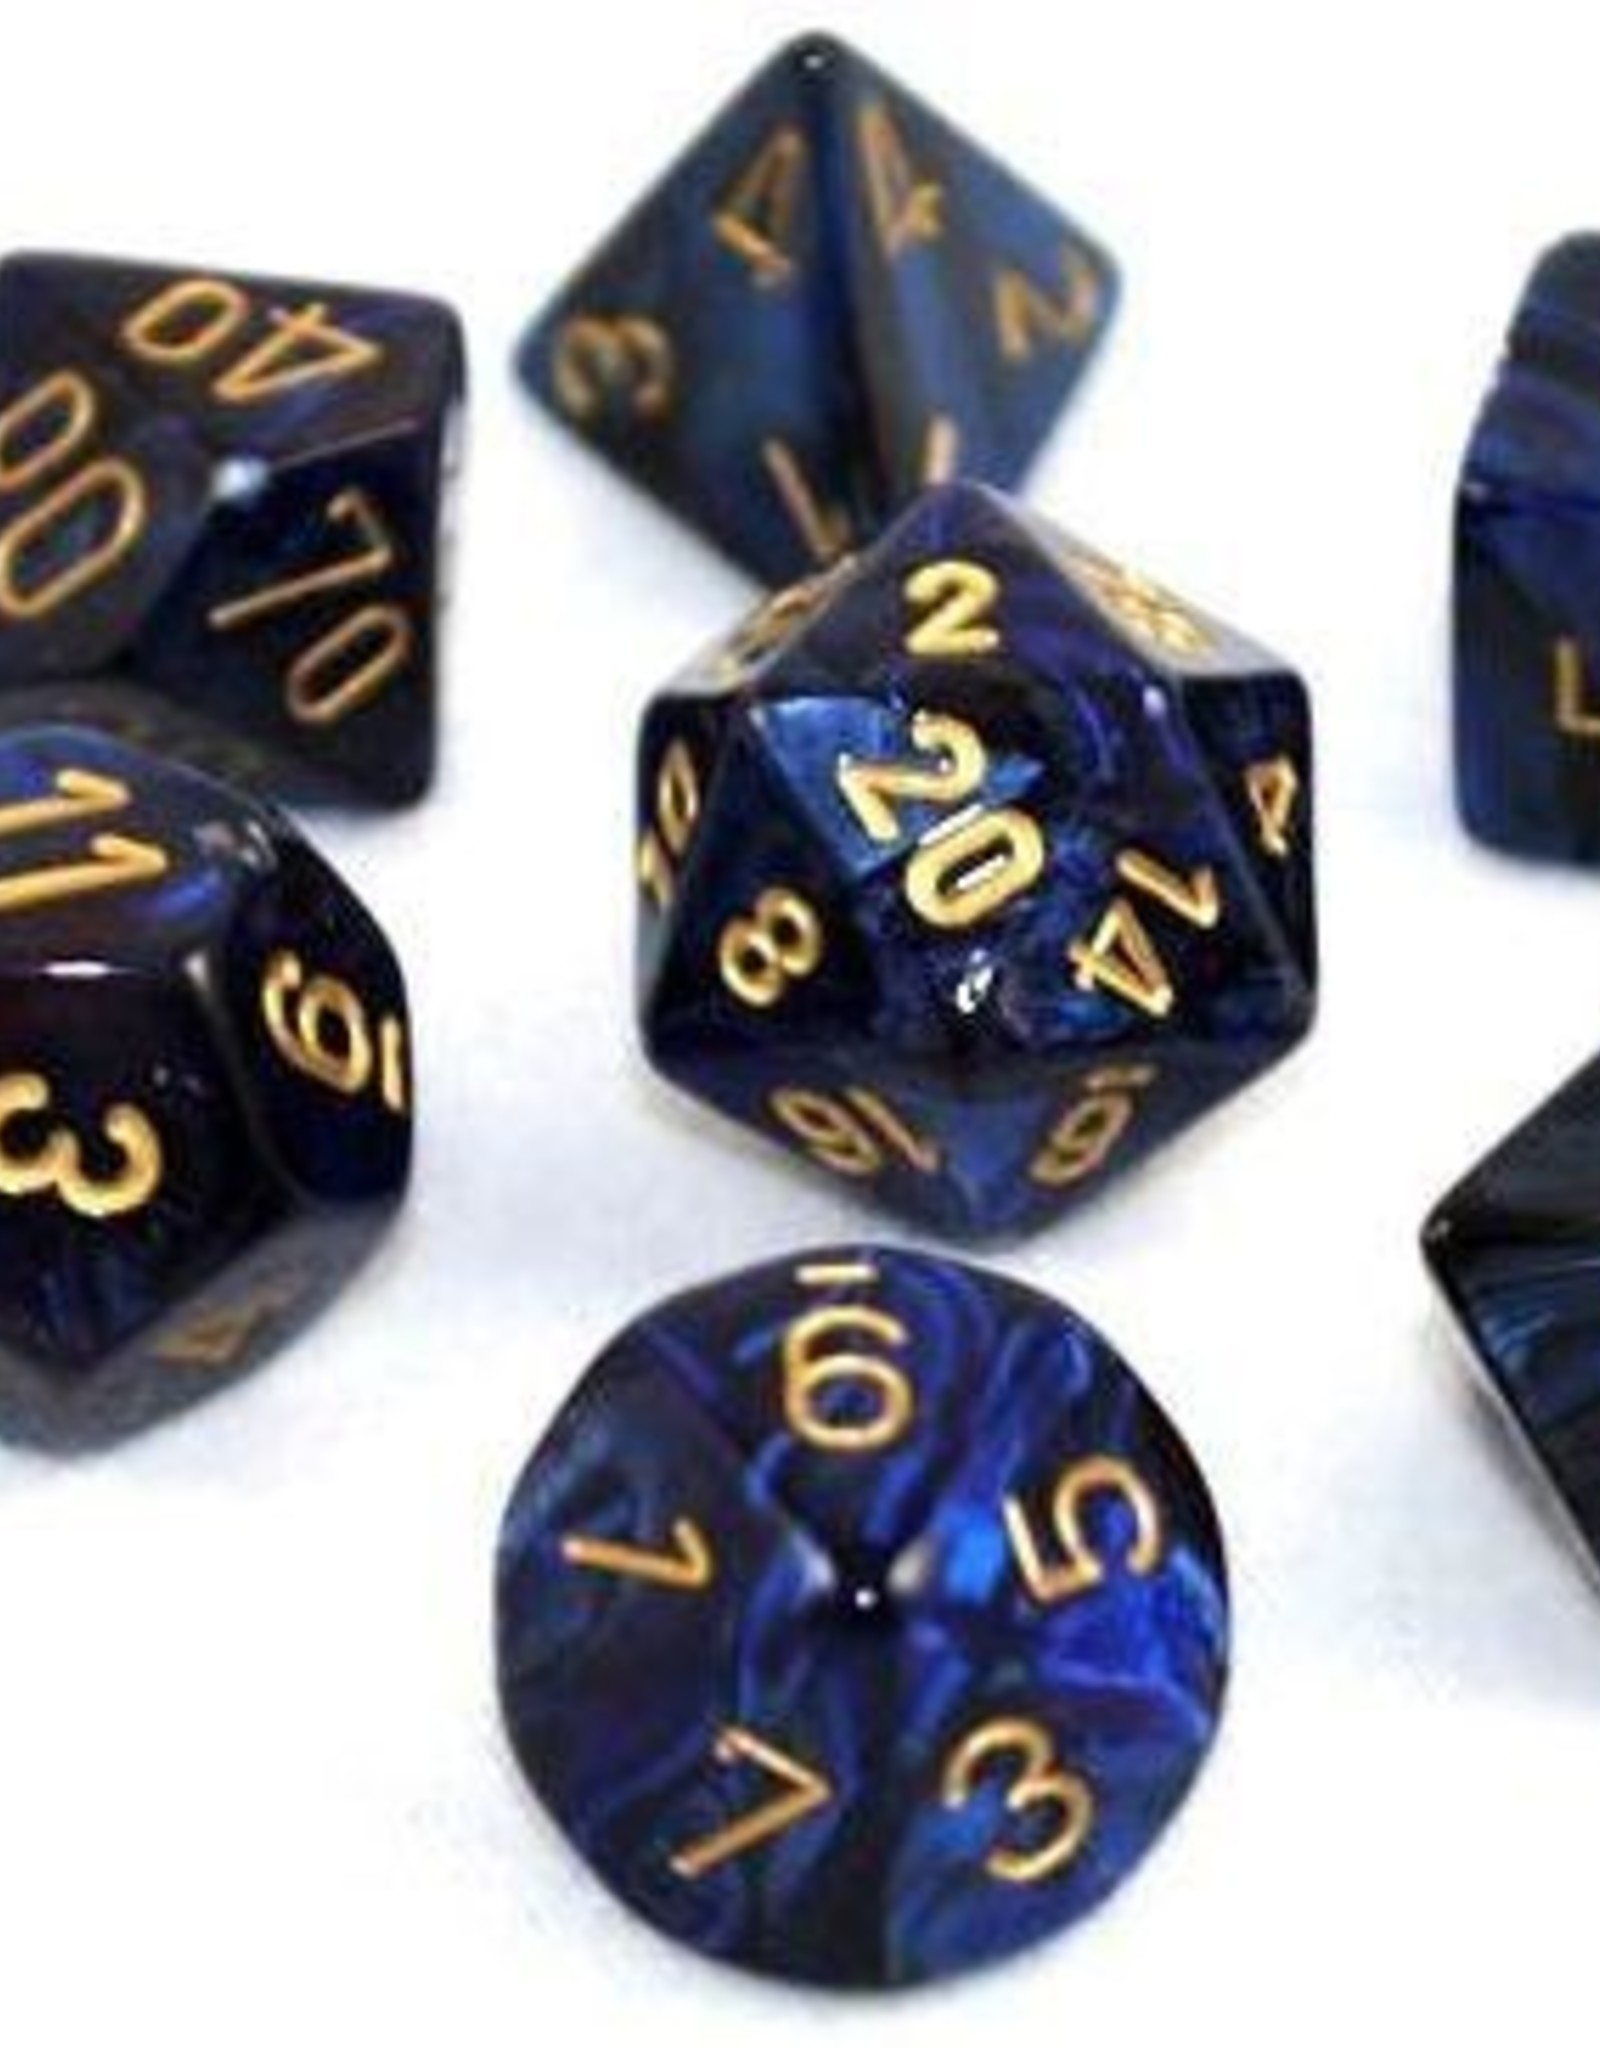 Chessex Chessex 7-Die set Scarab - Royal Blue/Gold